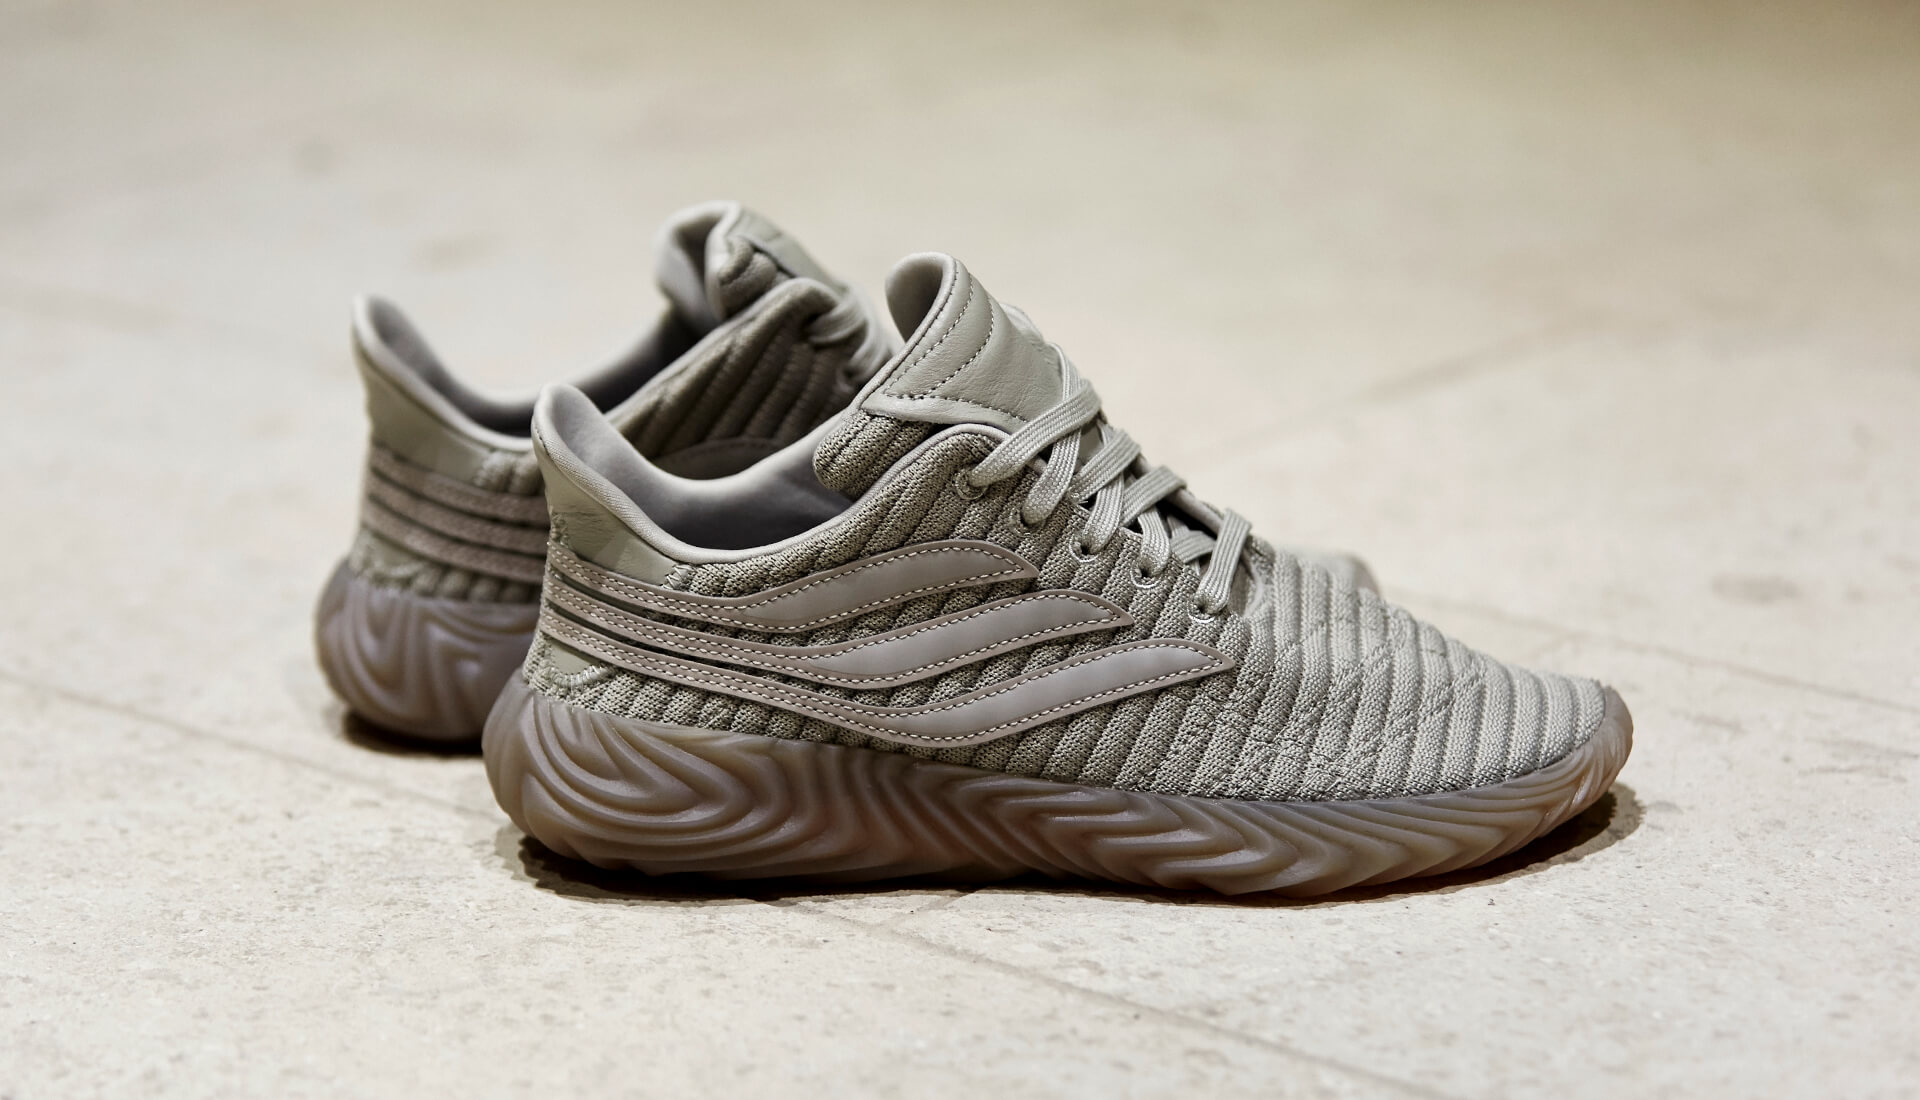 54504d20eb0717 adidas Originals Drop Two New Sobakov Colourways - SoccerBible